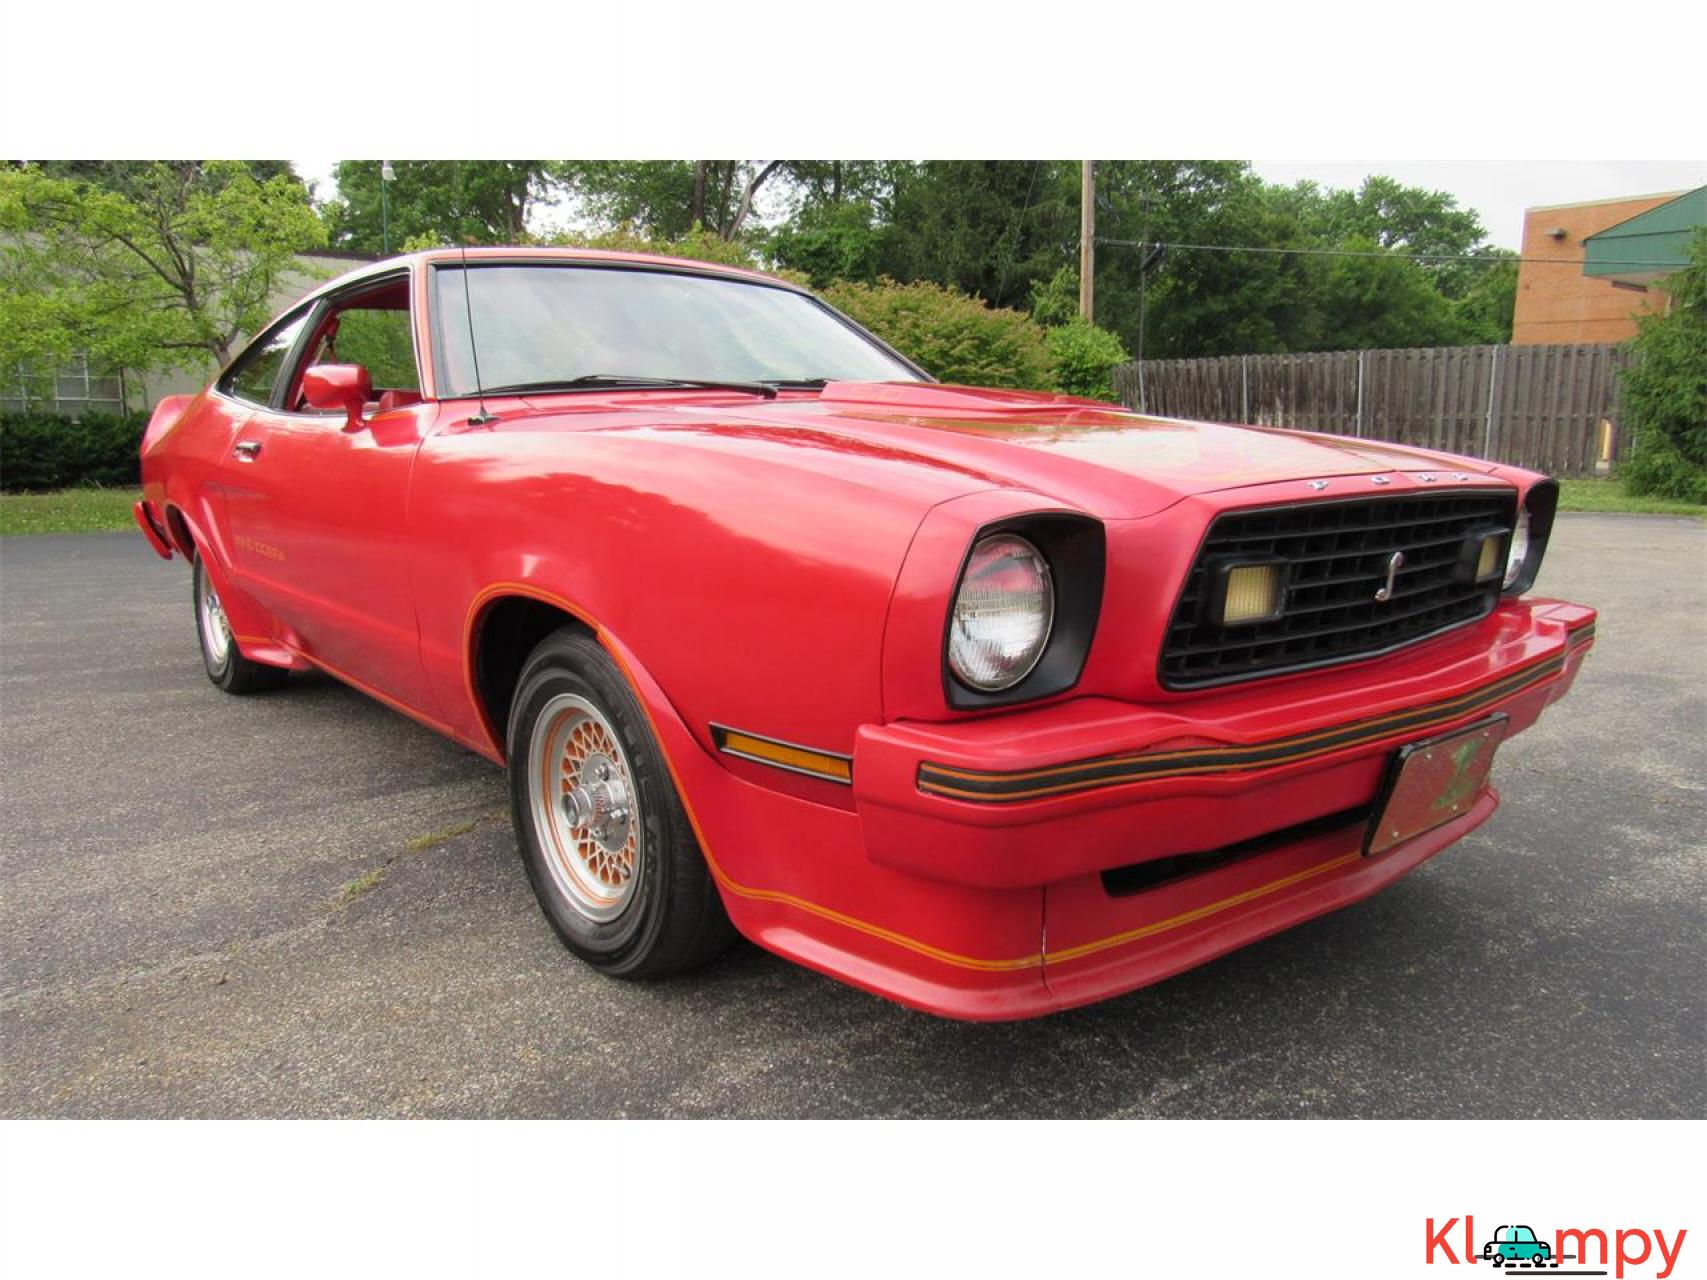 1978 Ford Mustang 302ci V8 Red - 3/17